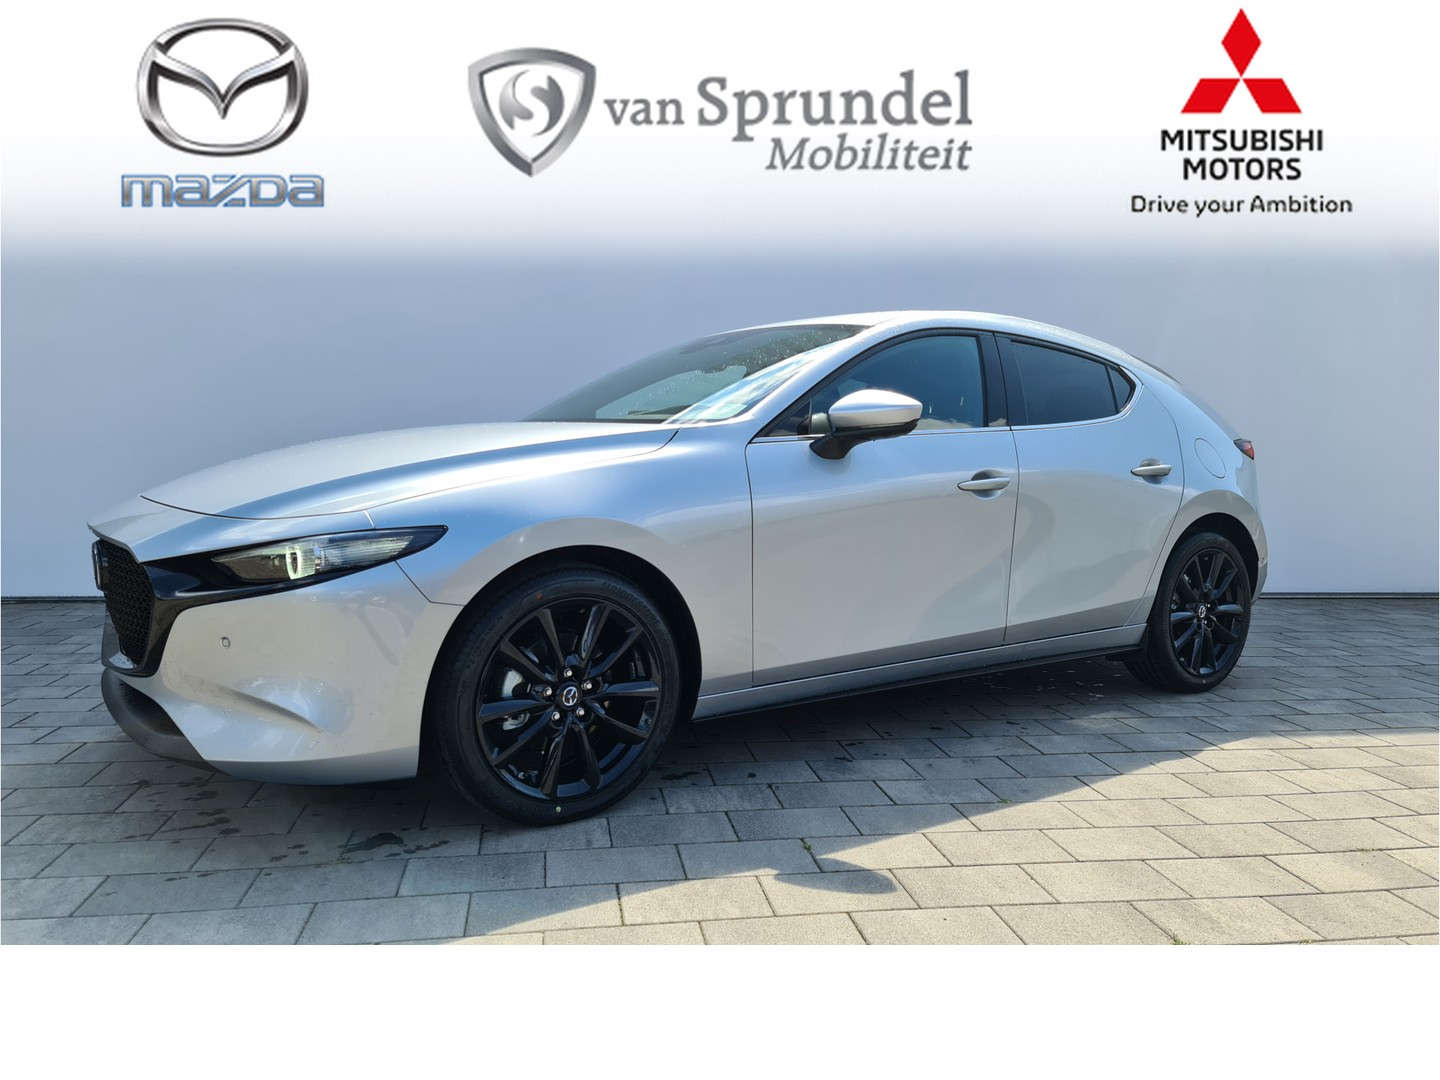 Mazda 3 2.0 skyactiv-x luxury + i-active sense pack * €3987,- netto deal voordeel*